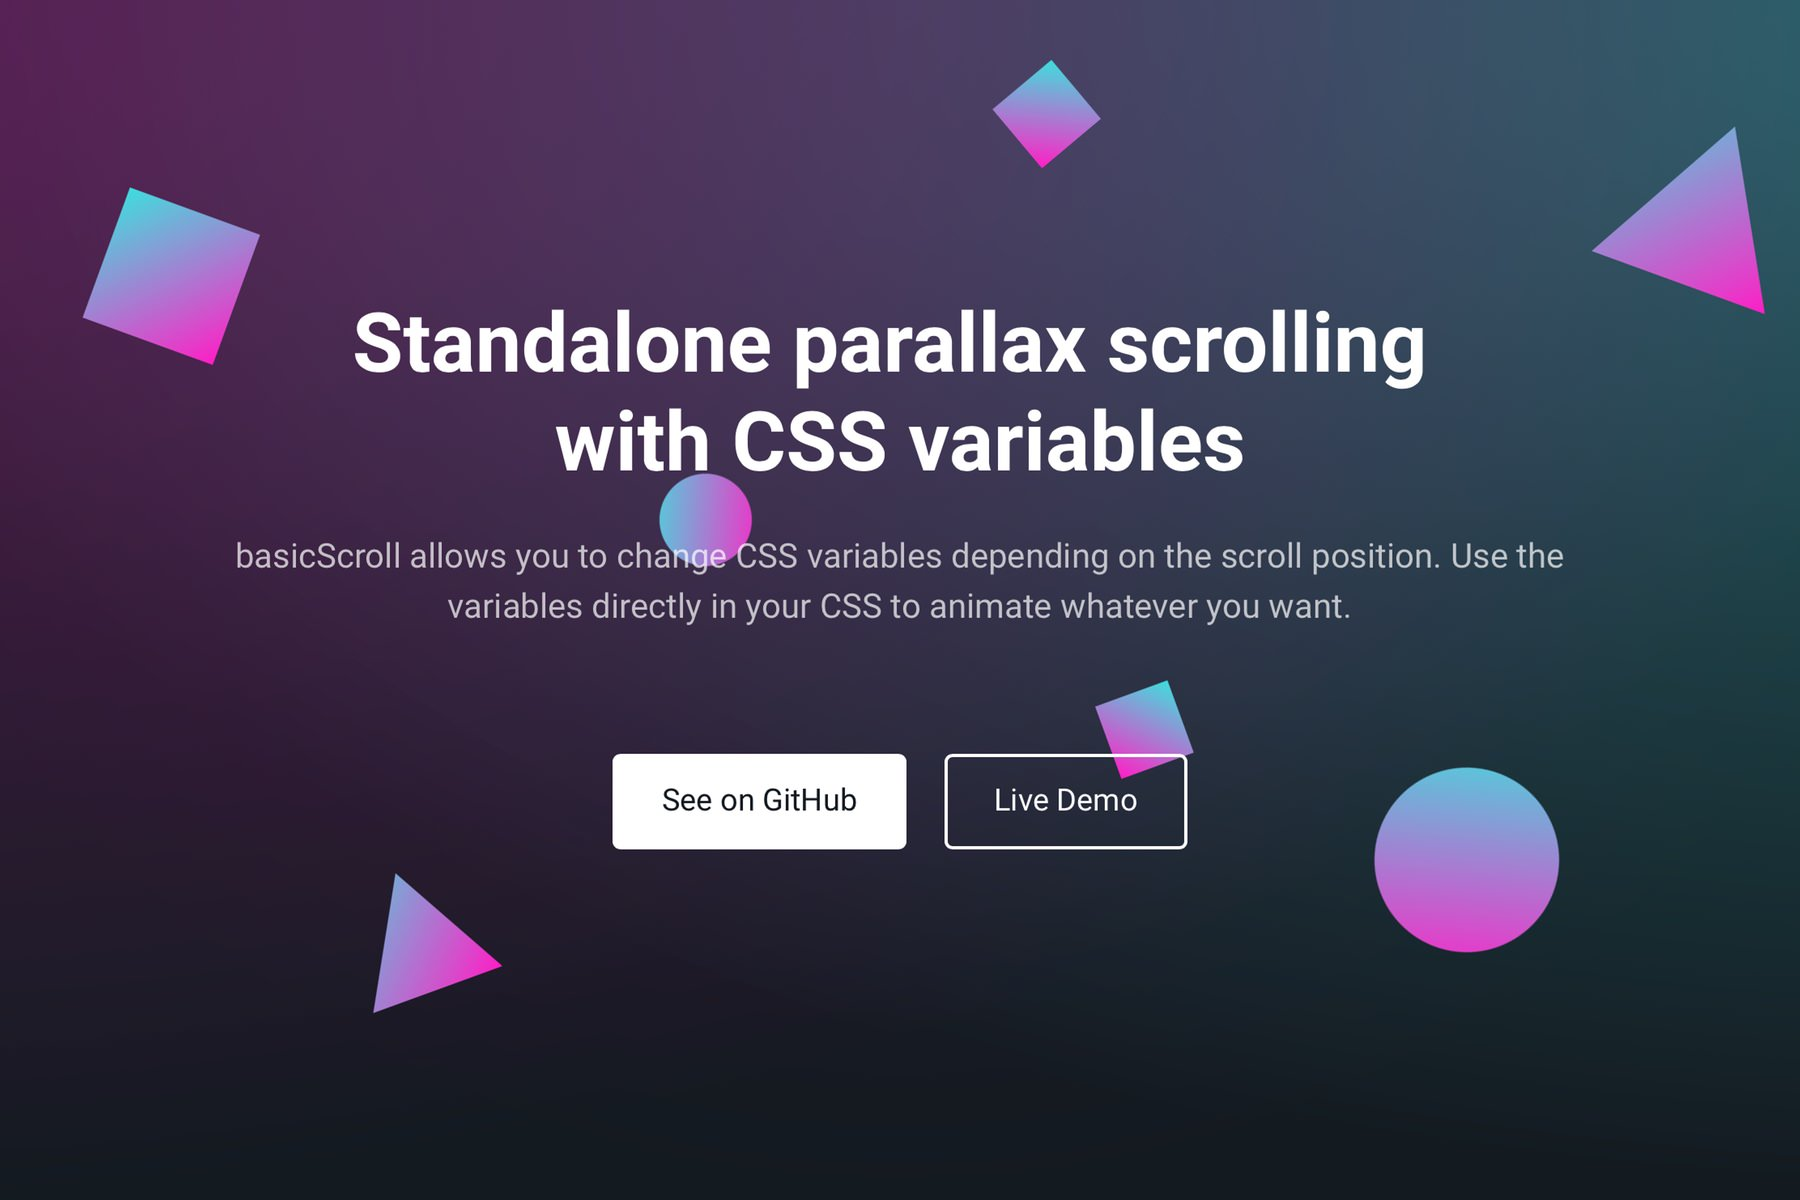 Parallax scrolling with CSS variables | basicScroll